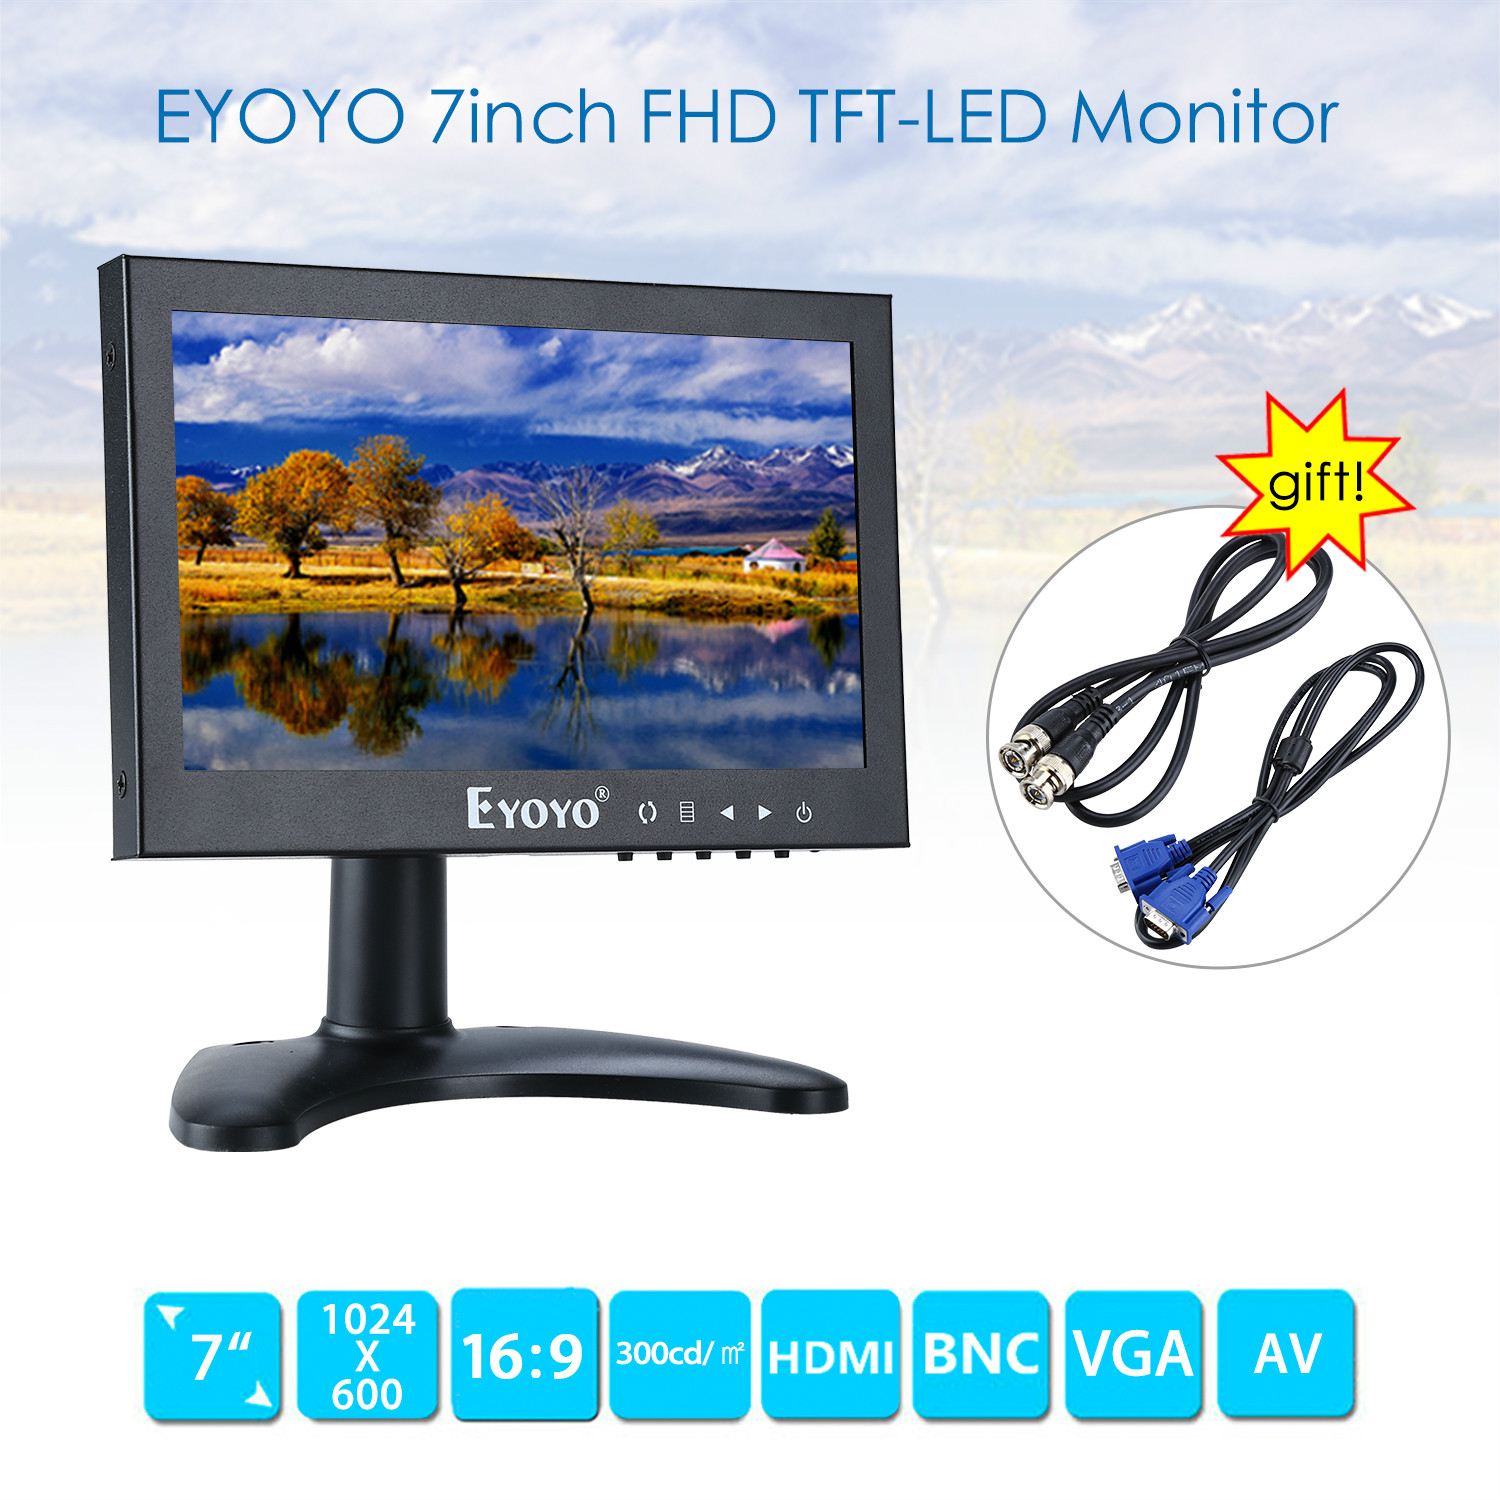 EYOYO 7inch FHD TFT LCD Screen 1024*600 HDMI 75degree BNC VGA AV Video Monitor For CCTV PC DVD DVR Security Camera TV лонгслив befree befree be031ewpjx77